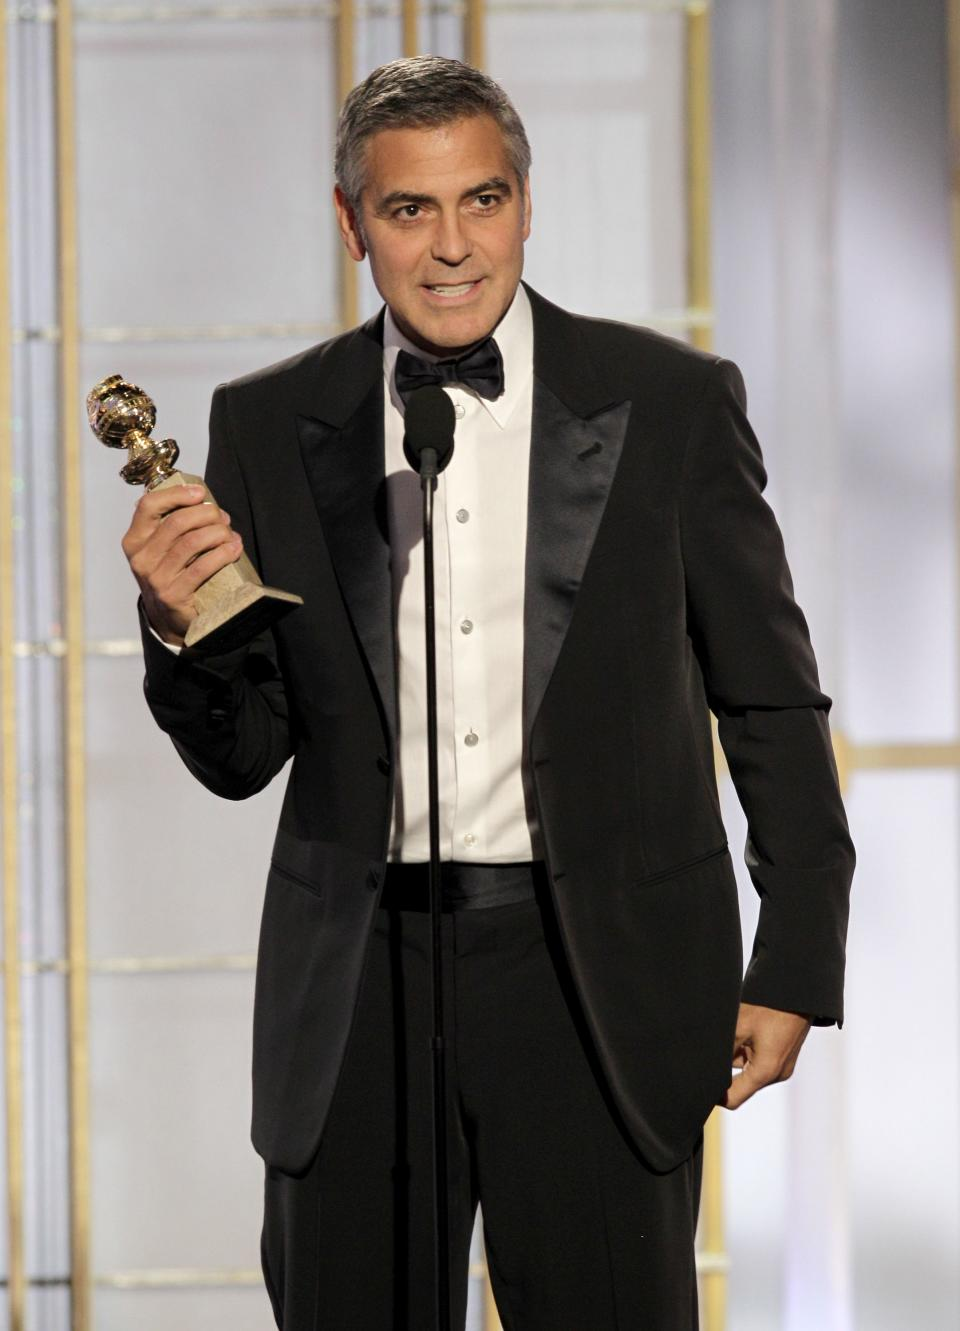 "In this image released by NBC, George Clooney accepts the award for best actor for his role in ""The Descendants"" during the 69th Annual Golden Globe Awards on Sunday, Jan. 15, 2012 in Los Angeles. (AP Photo/NBC, Paul Drinkwater)"